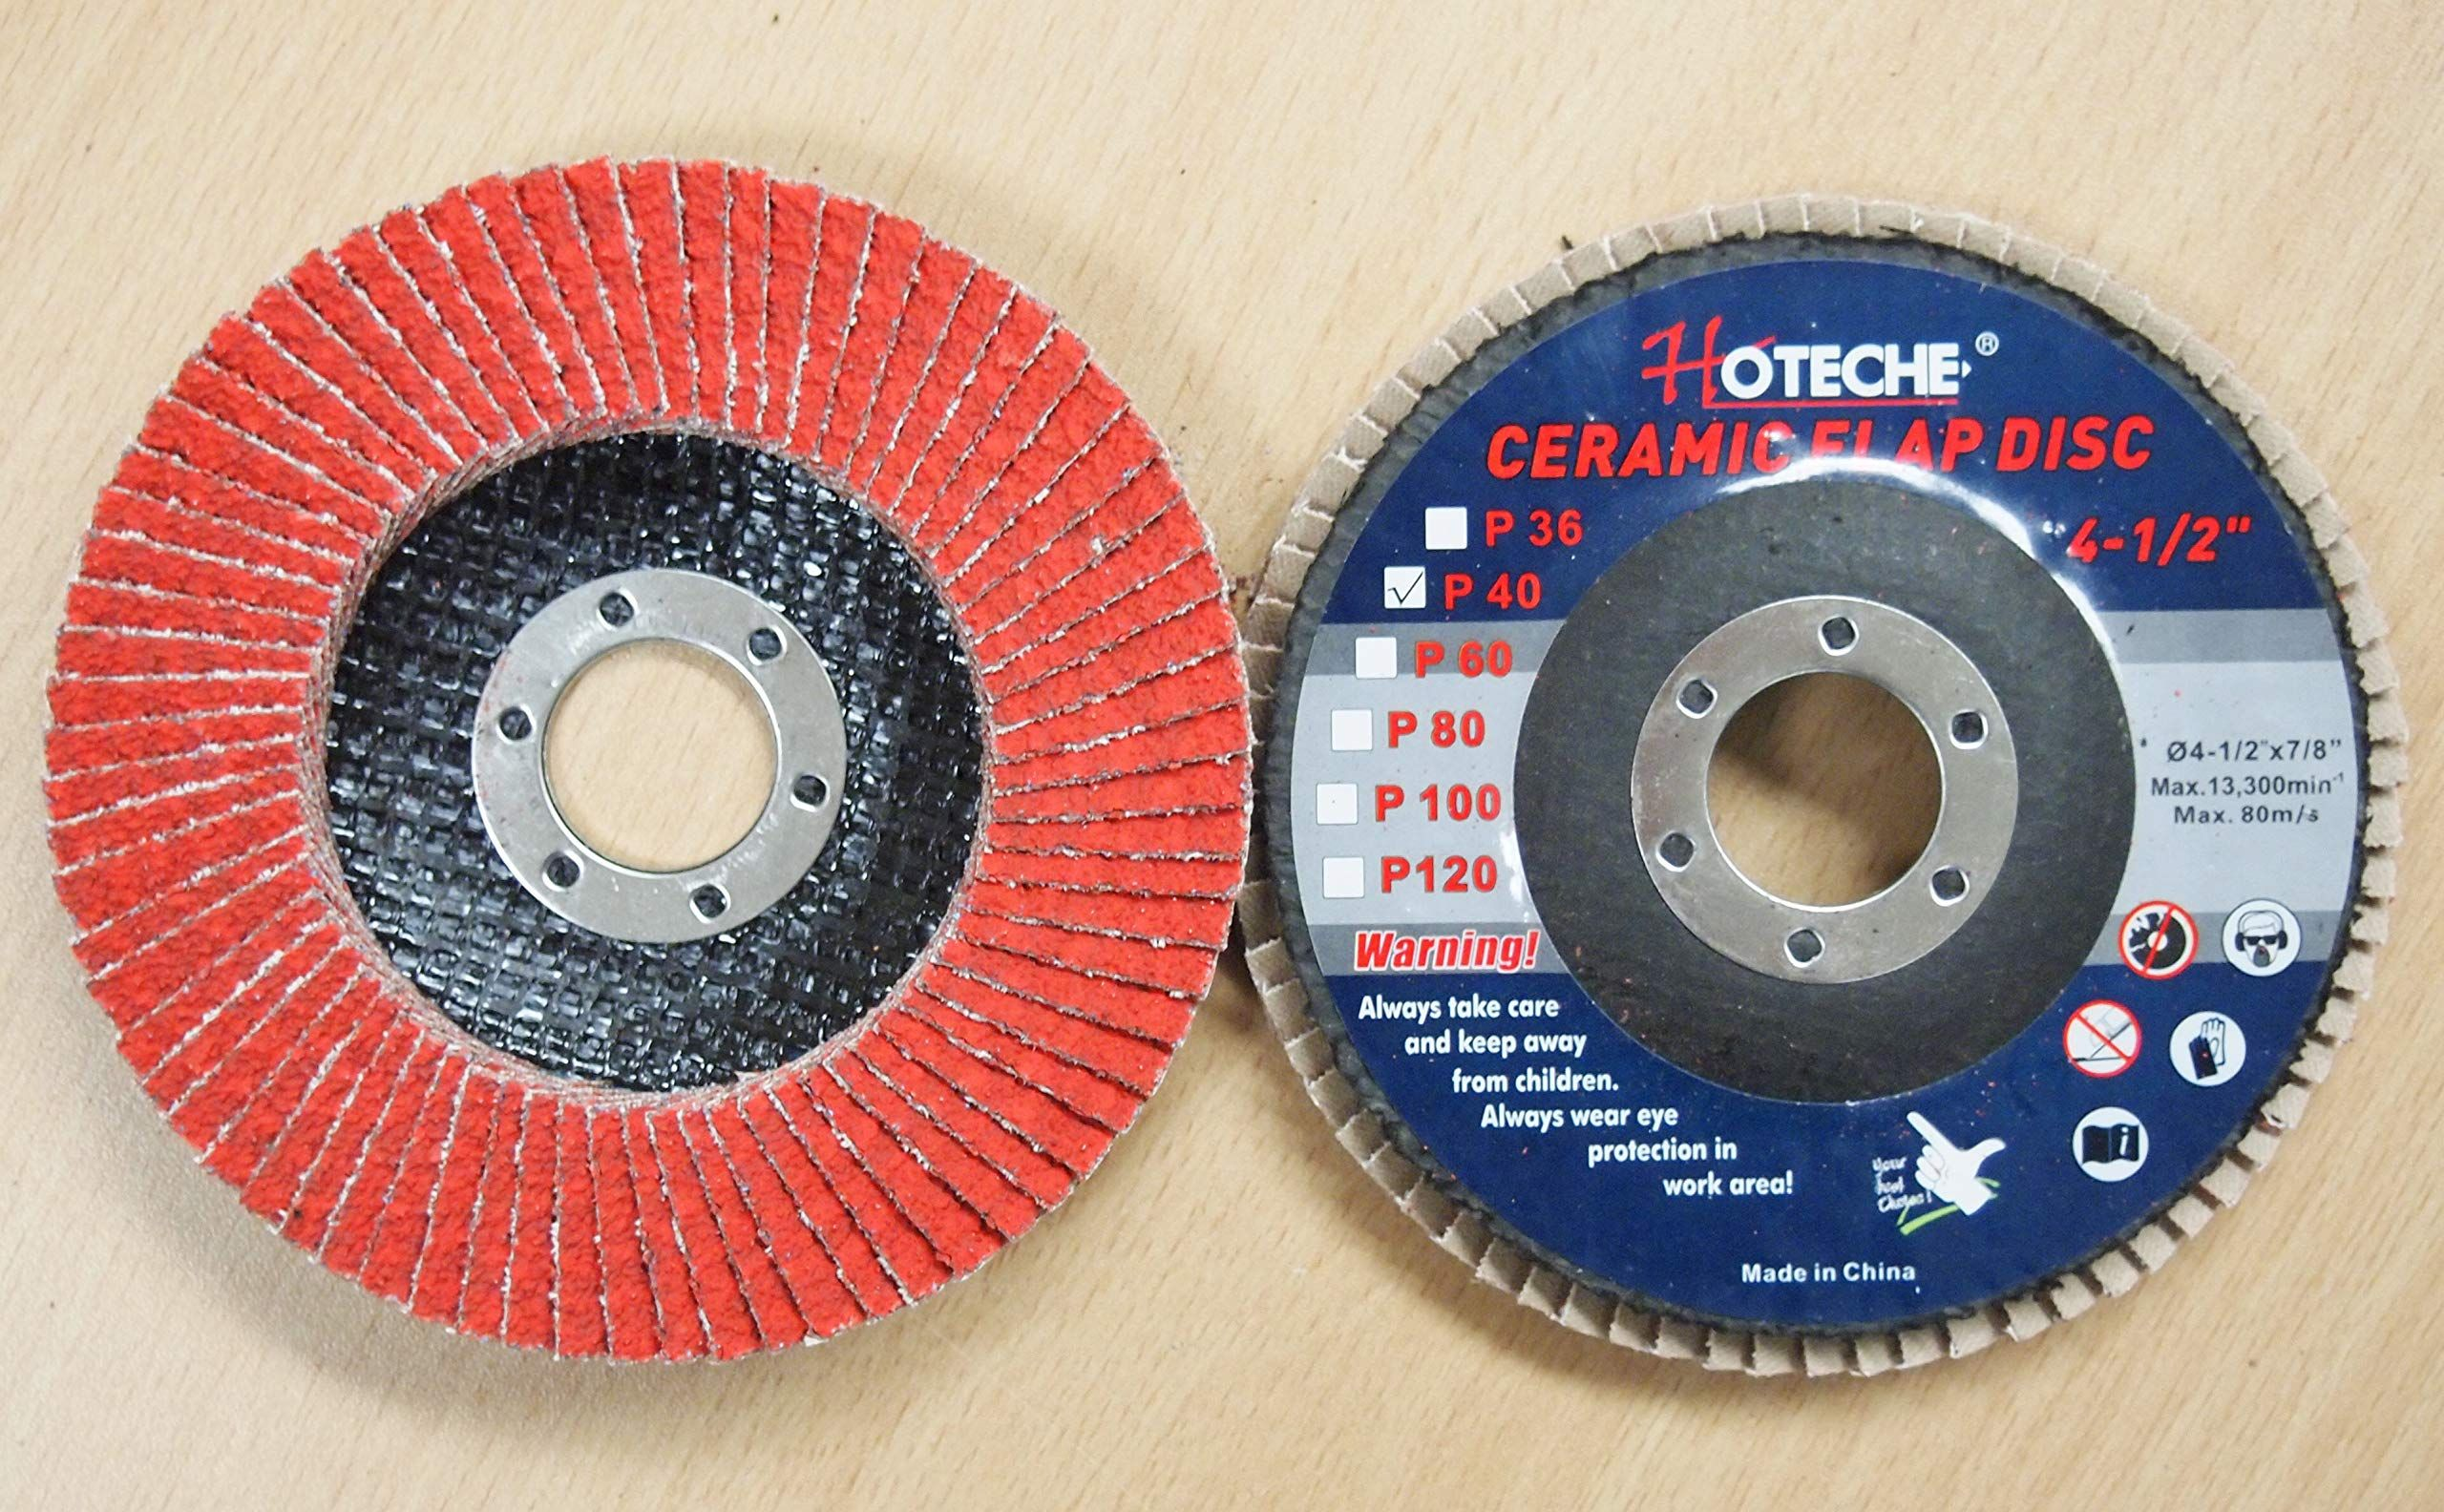 Lot Of 10 Ceramic Flap Disc Grinding Wheel 4 1 2 X7 8 40 Grit Ad Flap Sponsored Disc Ceramic Lot In 2020 Ceramics 10 Things Weight Plates